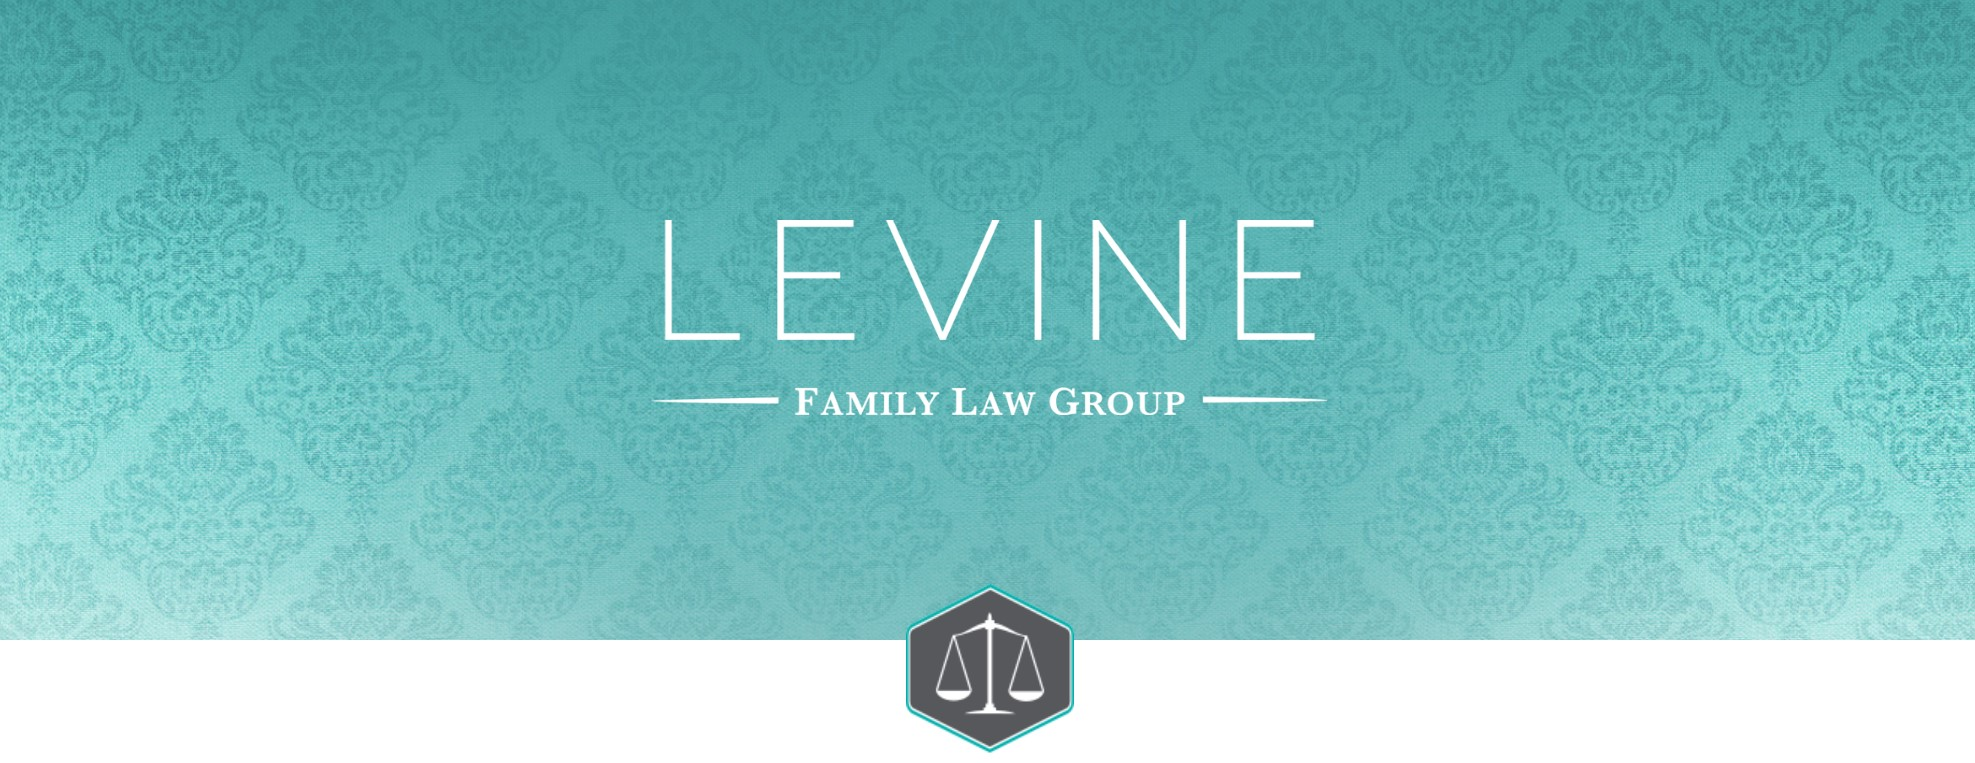 Levine Family Lawyers Emeryville, CA